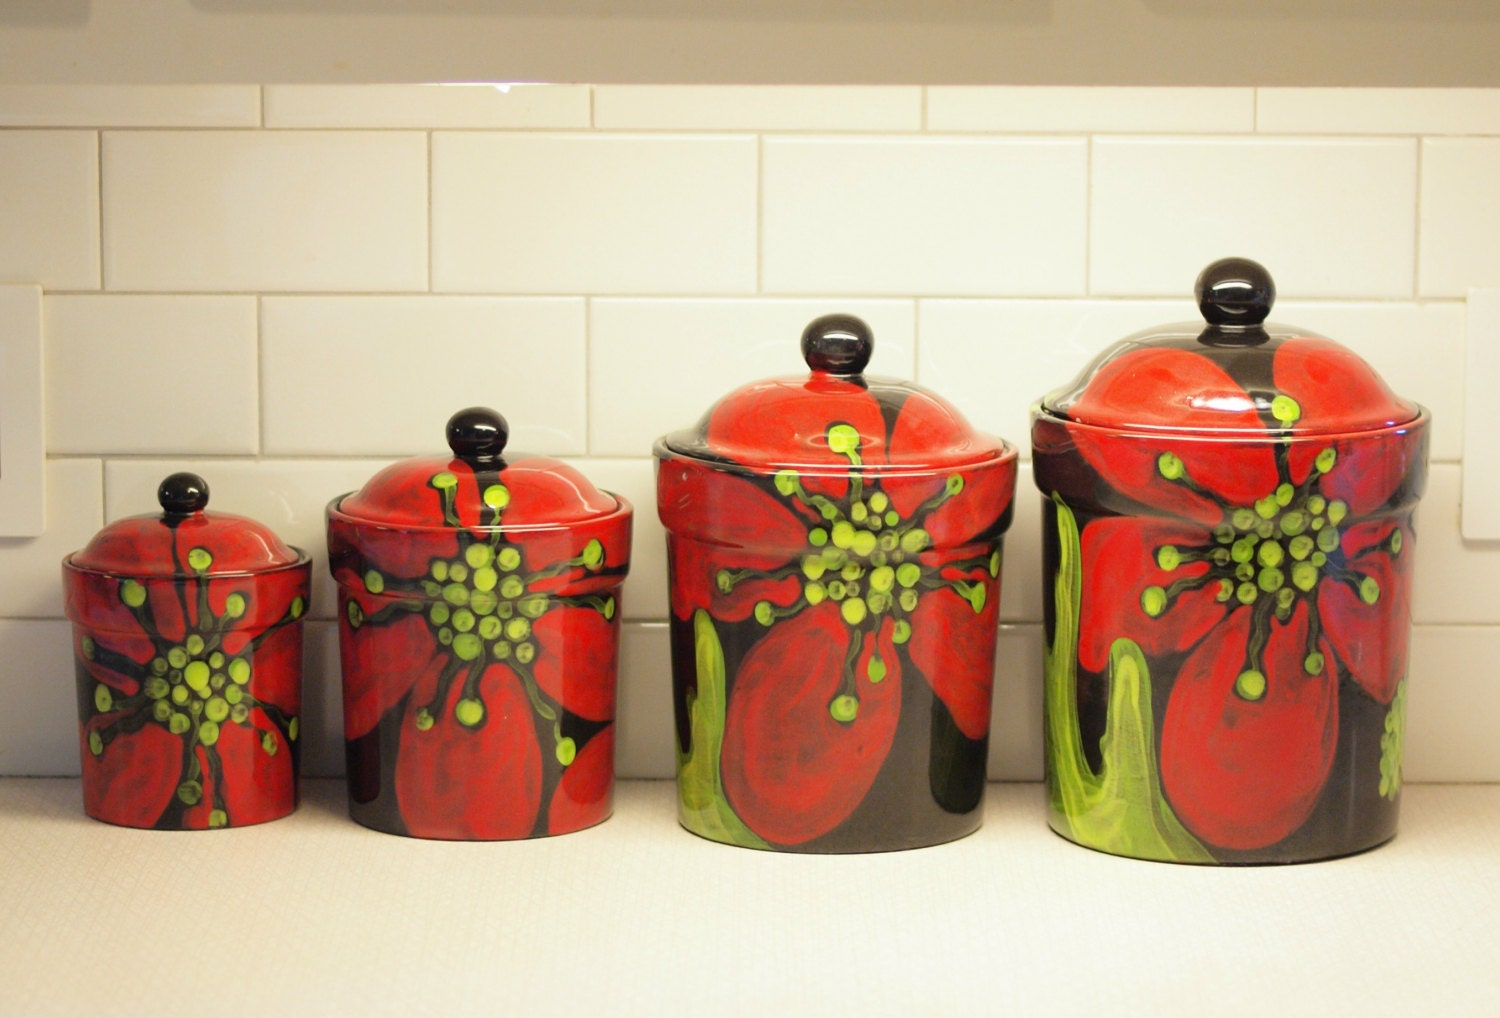 canister set ceramic kitchen canisters pottery by romyandclare quail run pottery canister set western kitchen pinterest